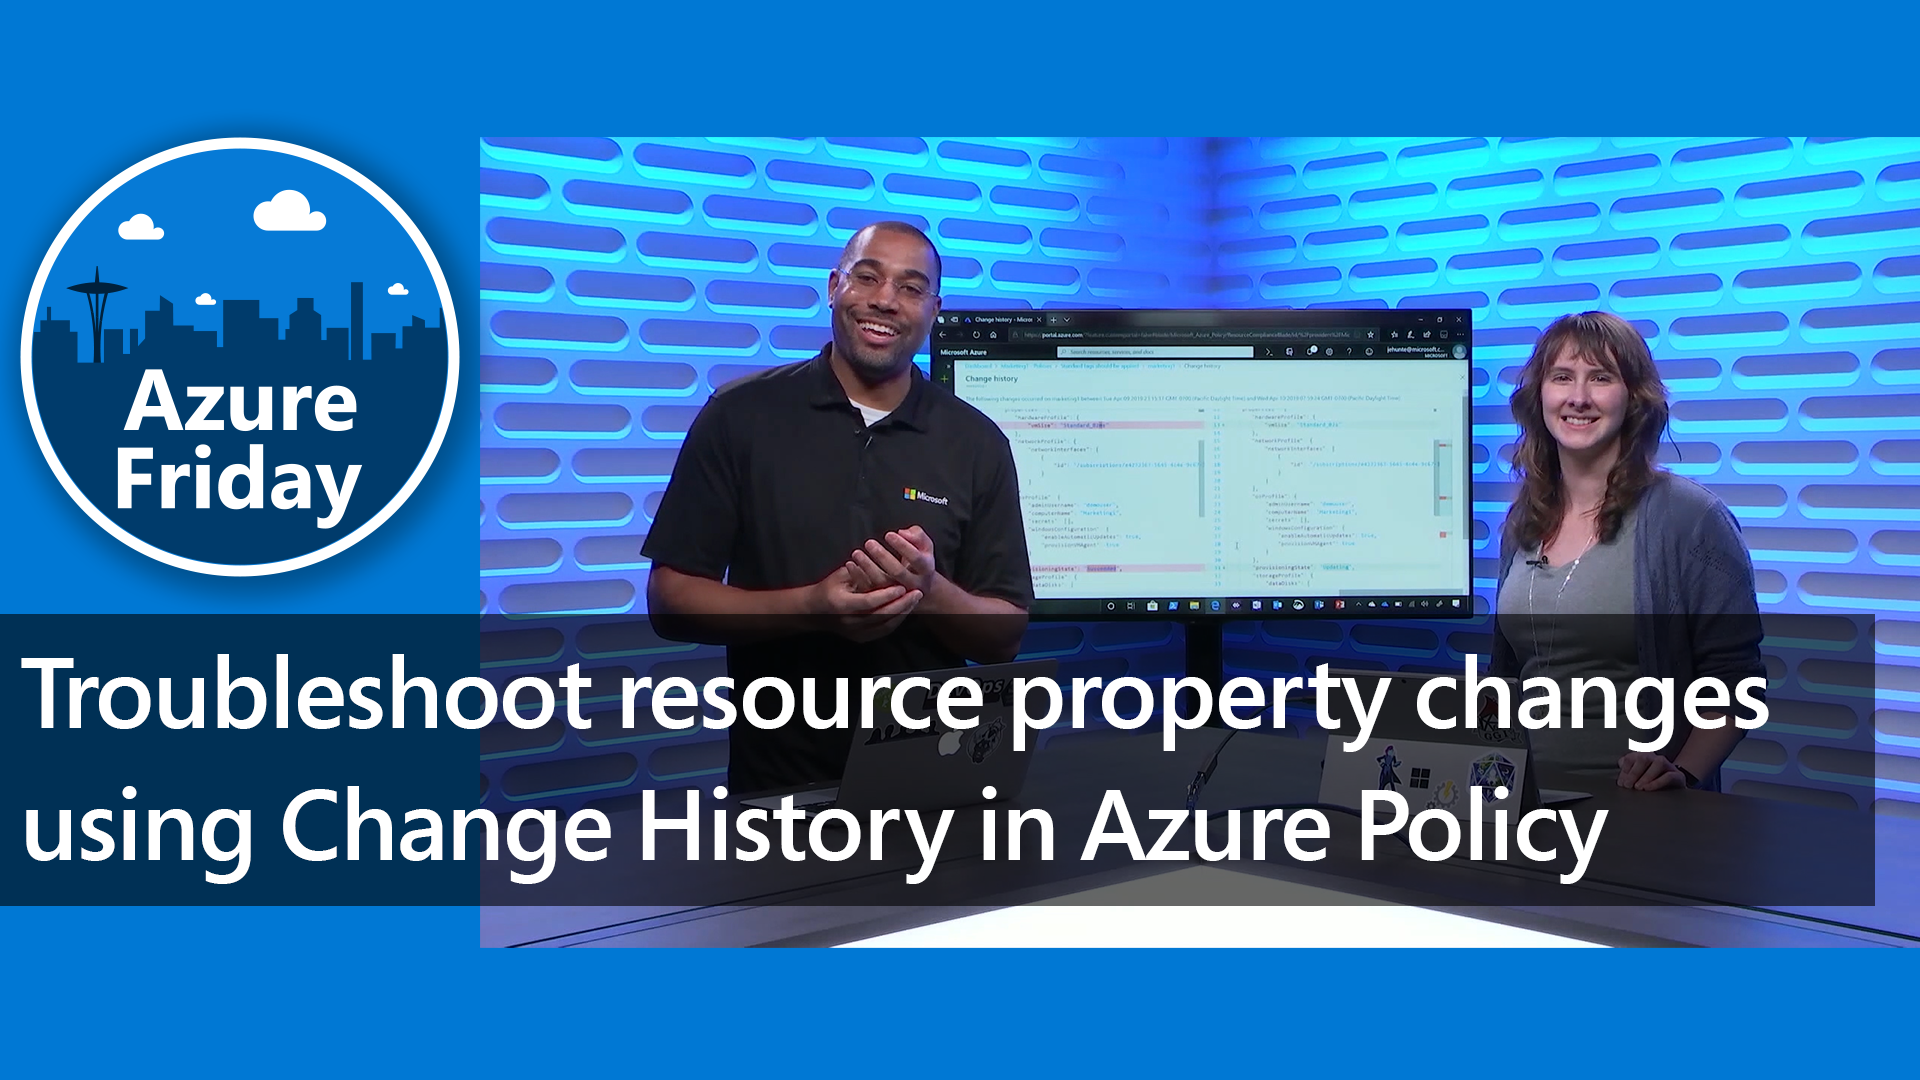 Troubleshoot resource property changes using Change History in Azure Policy